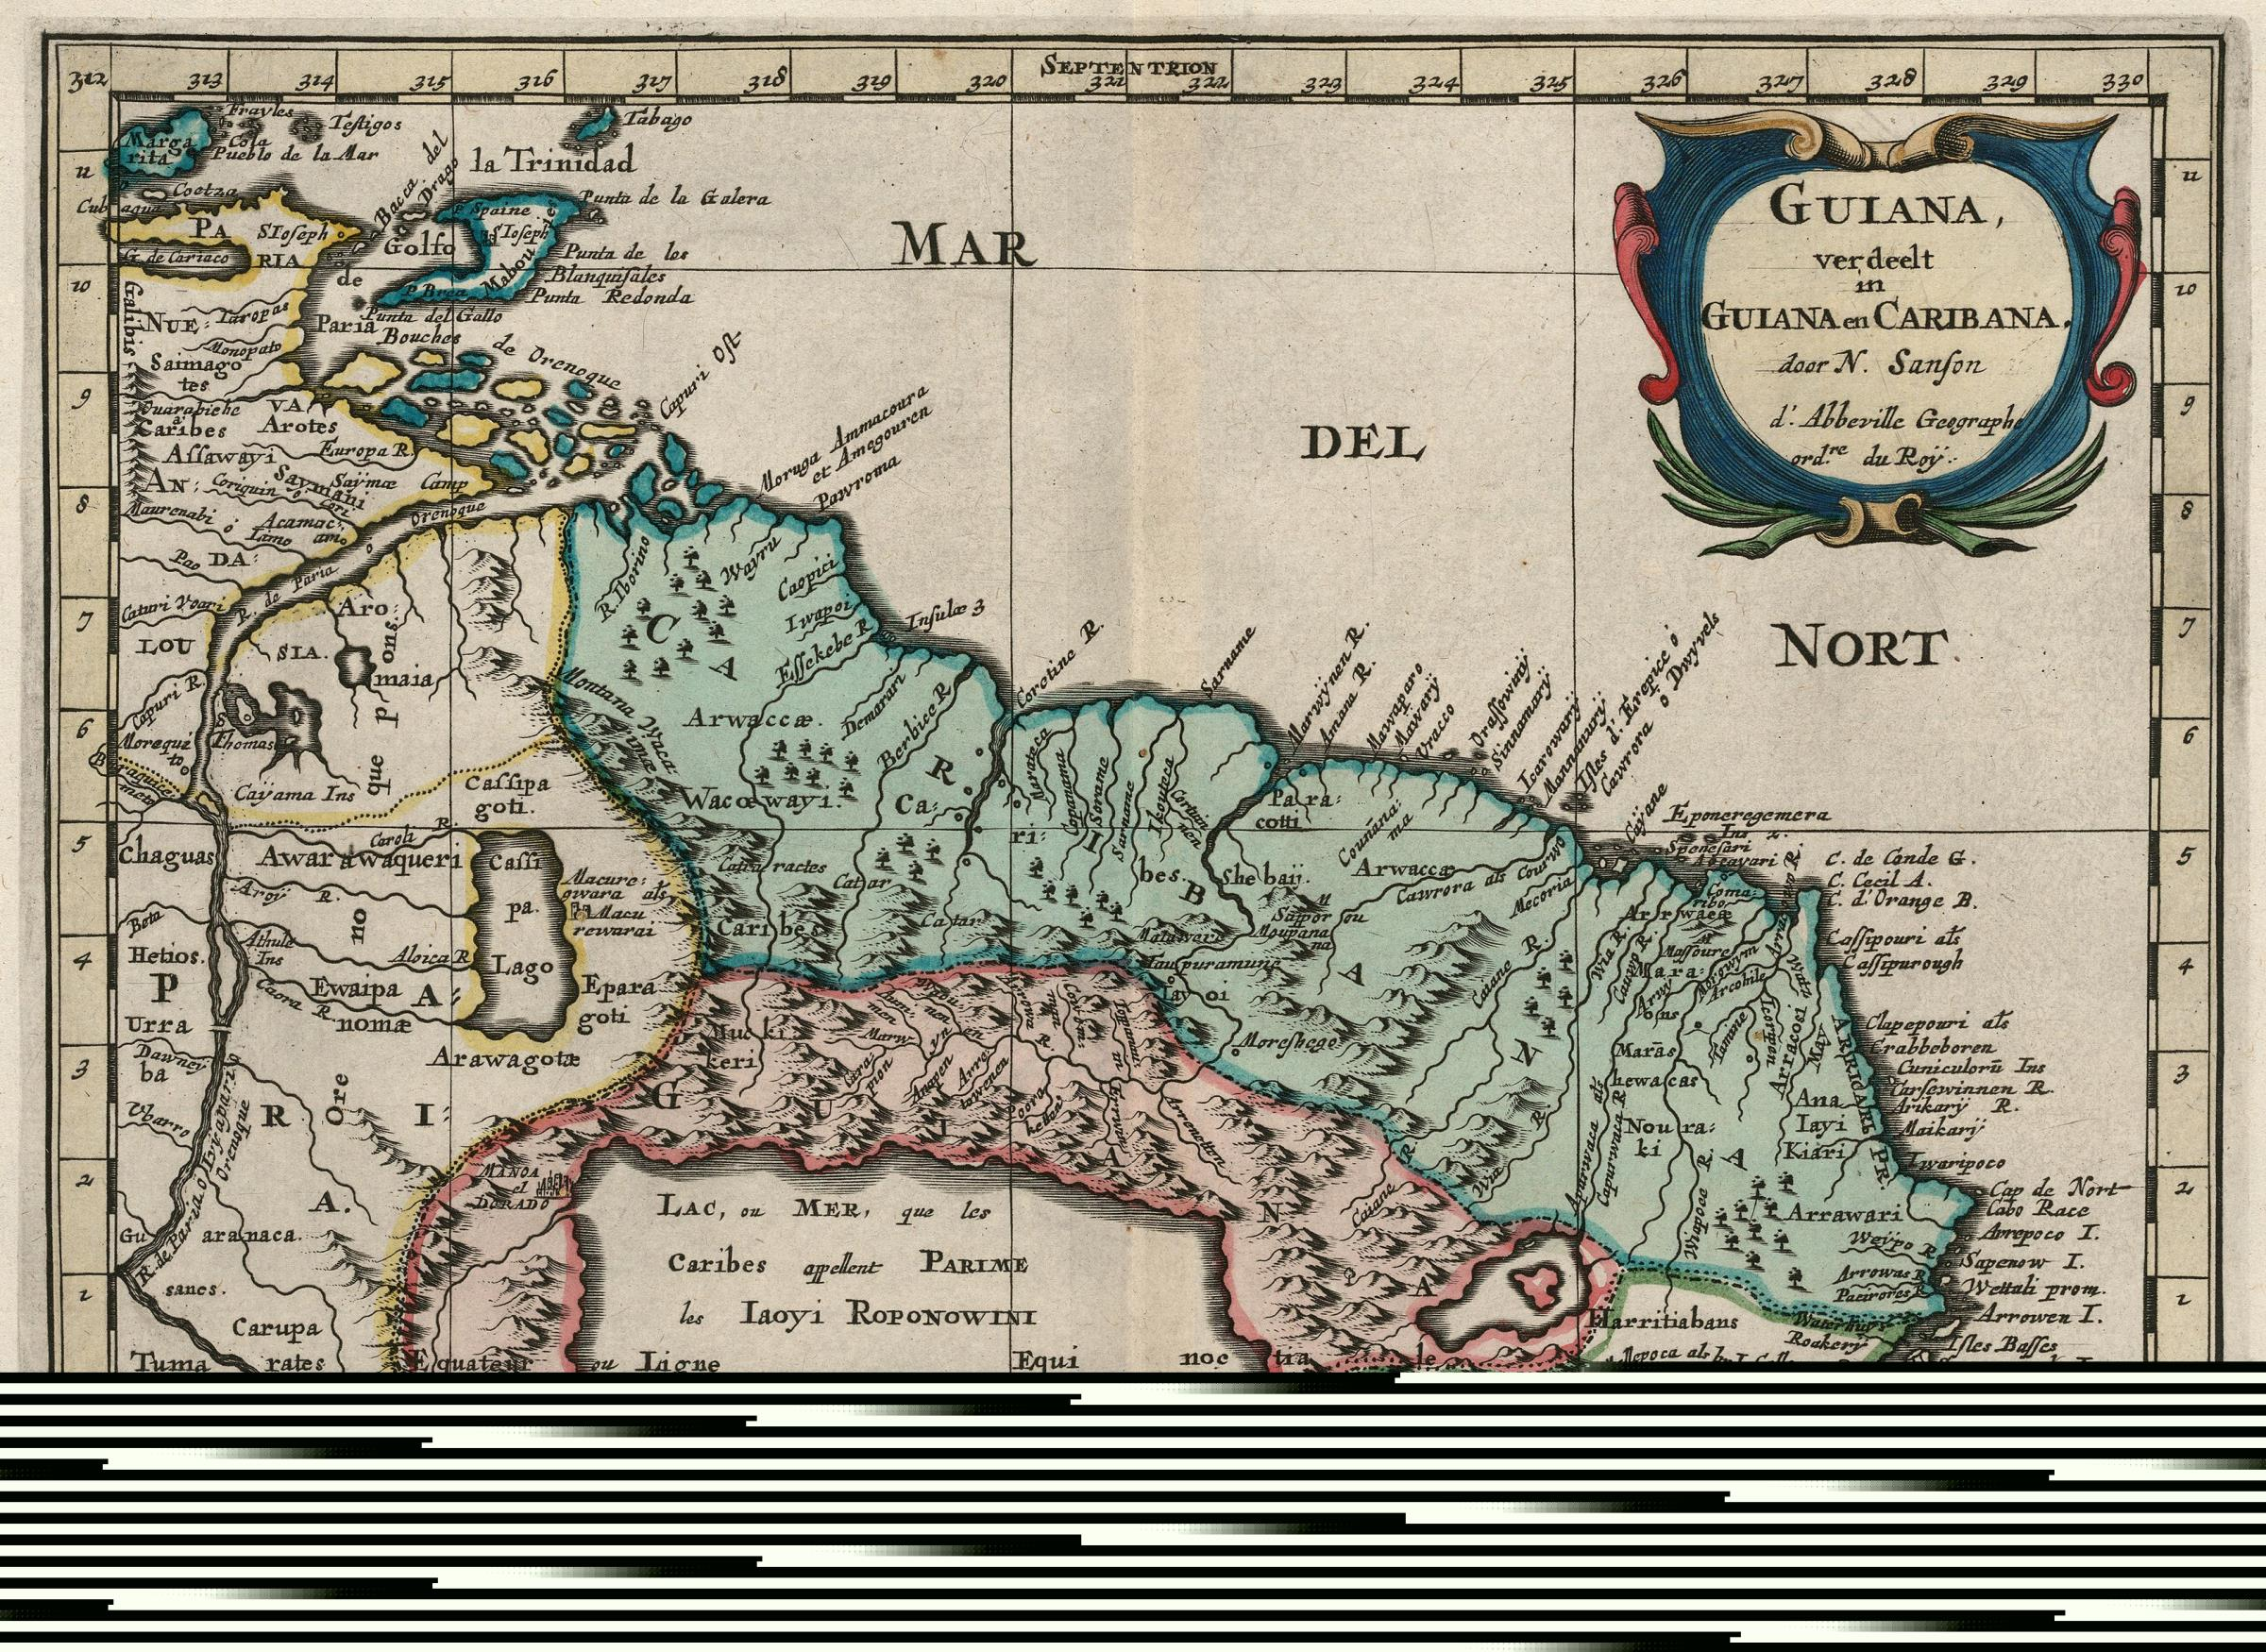 FileAMH6683KB Map of the north east coast of South Americajpg